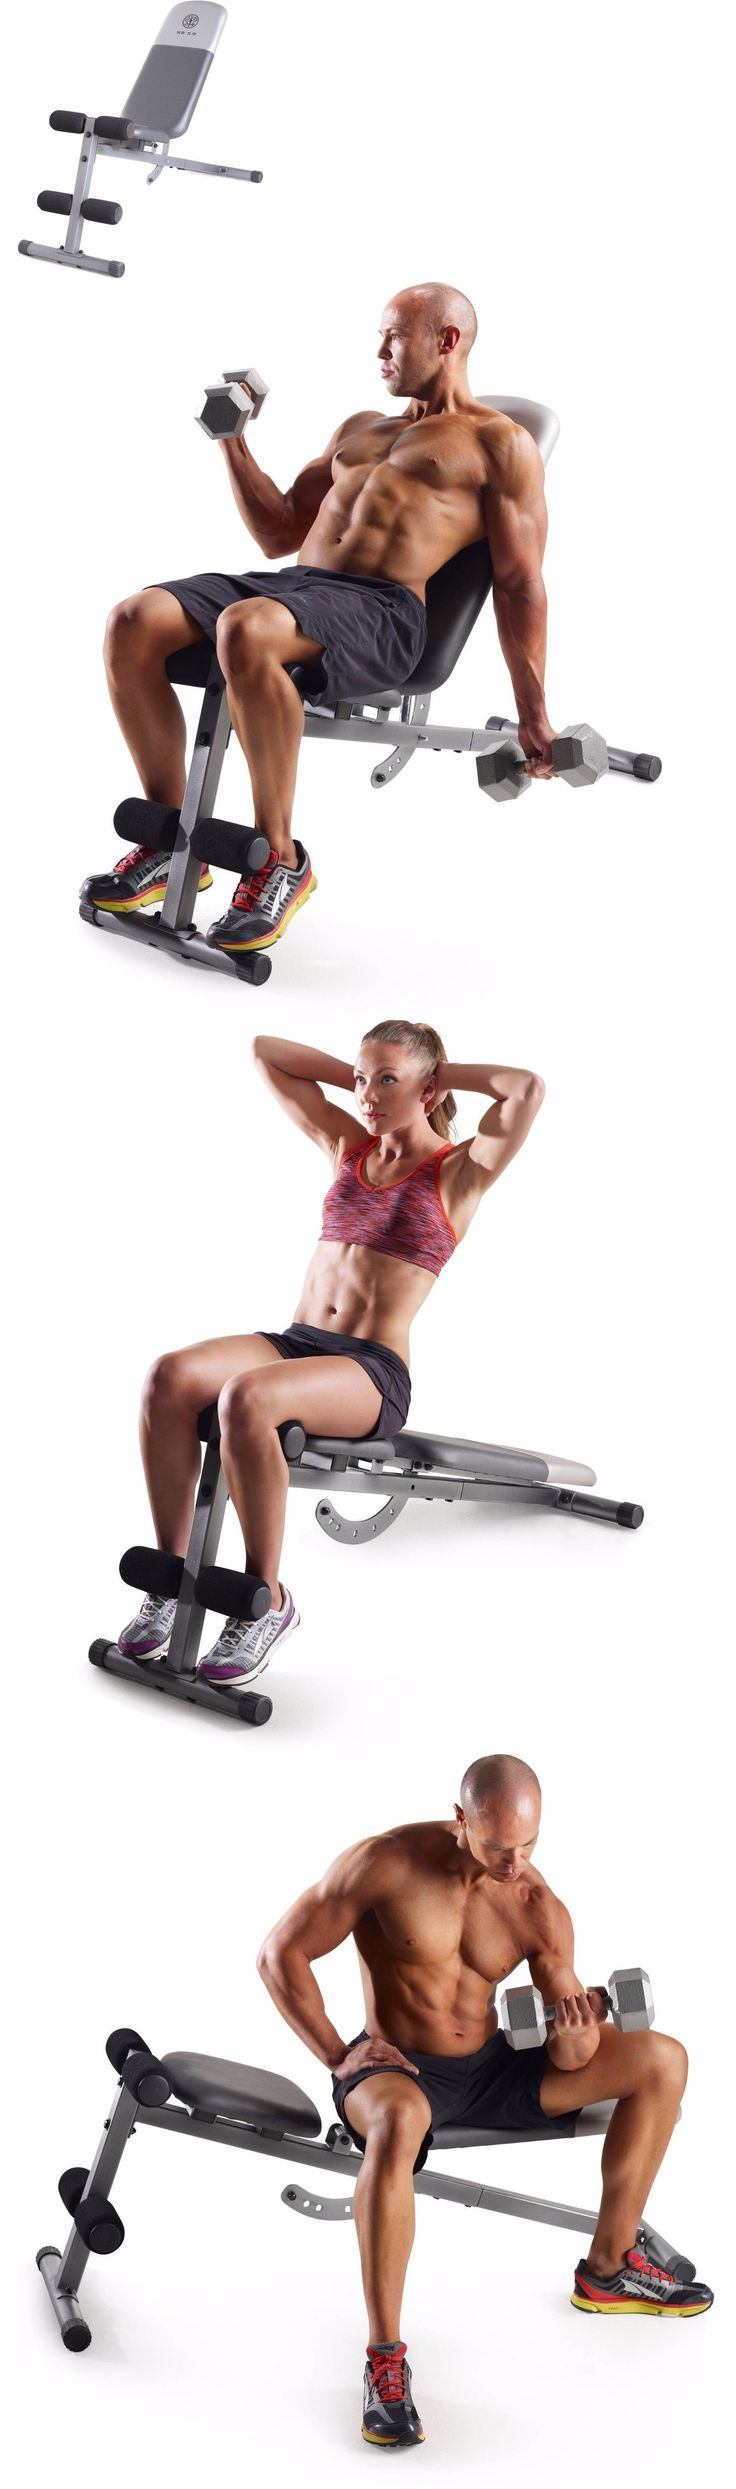 Benches 15281: Golds Gym Utility Adjustable Bench Workout Weight Exercise Home Training Ab New -> BUY IT NOW ONLY: $55 on eBay!